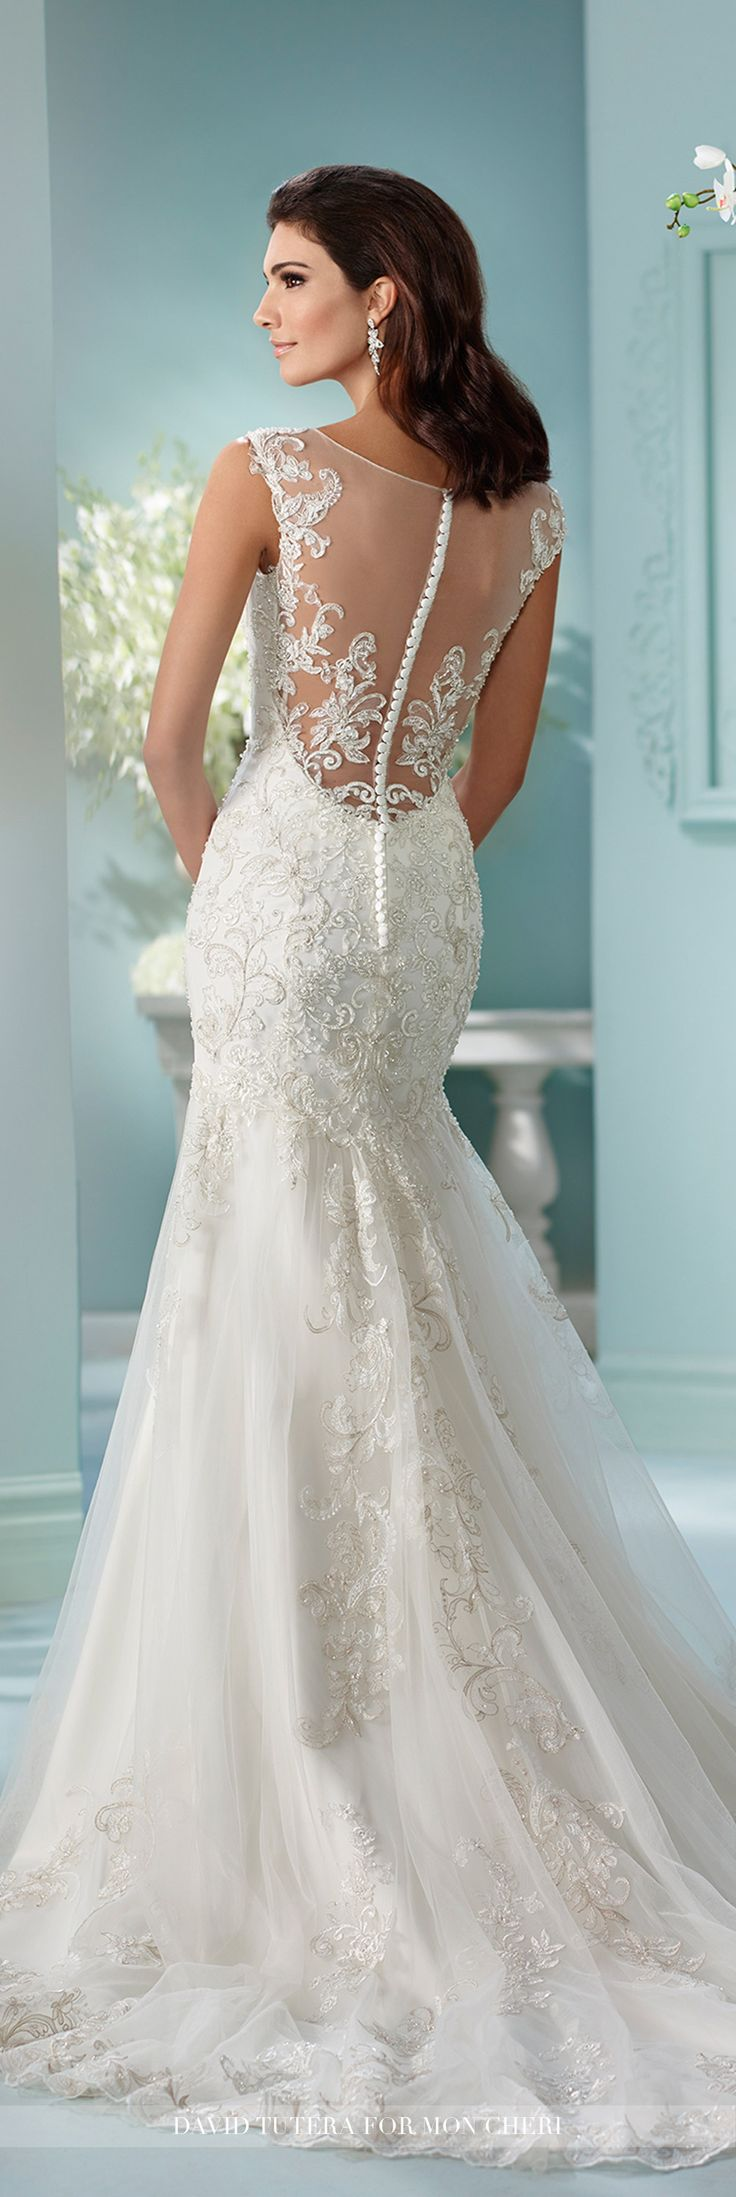 The best images about wedding day on pinterest maggie sottero